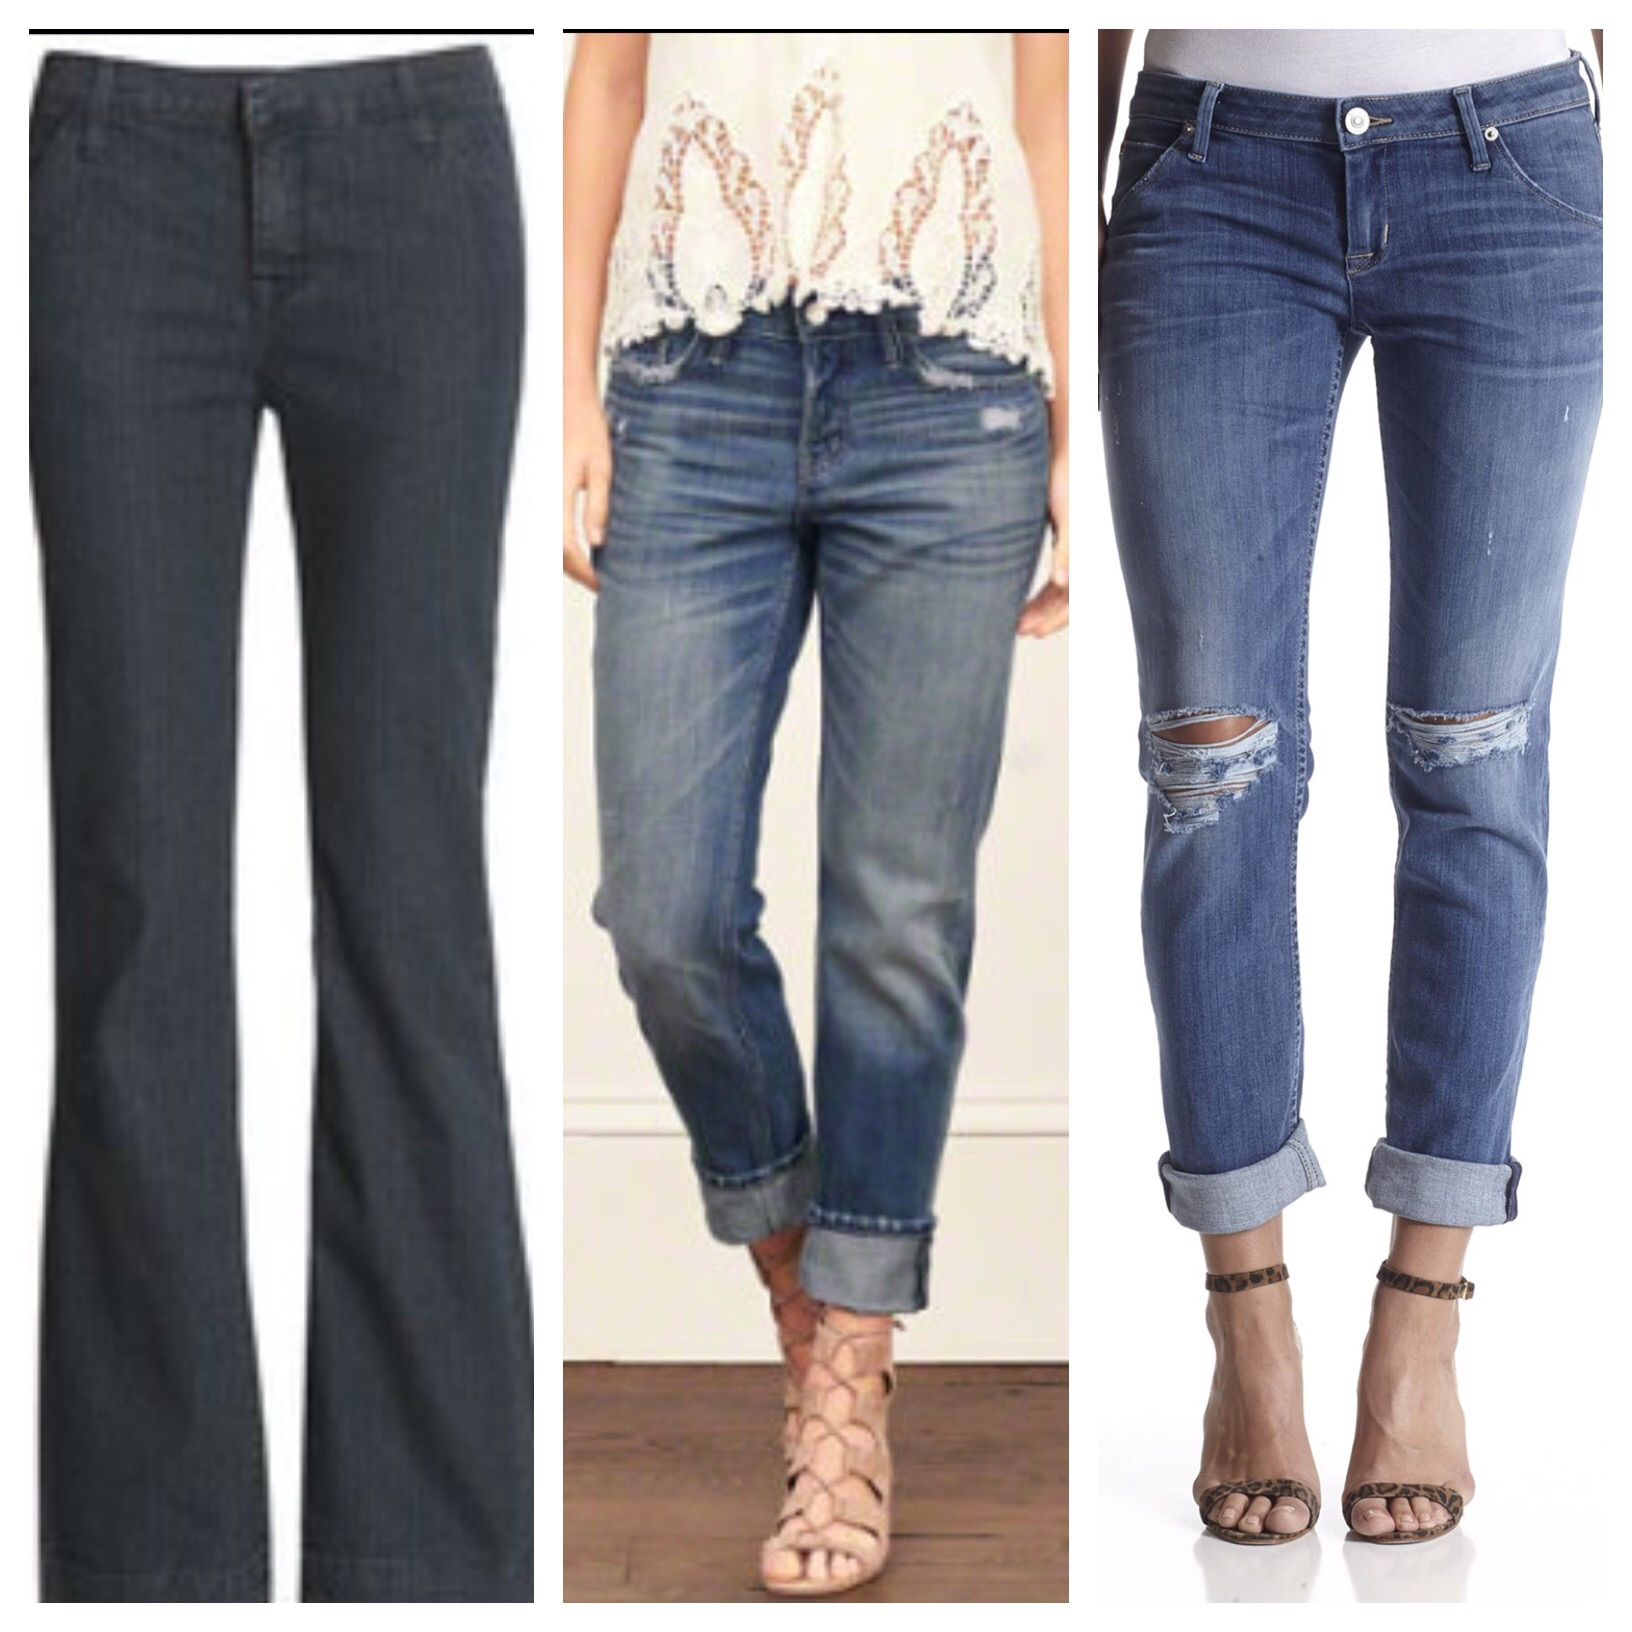 Love the tailored flare pant, very slimming. Also a good pair of boyfriend jeans, you dress up or down!